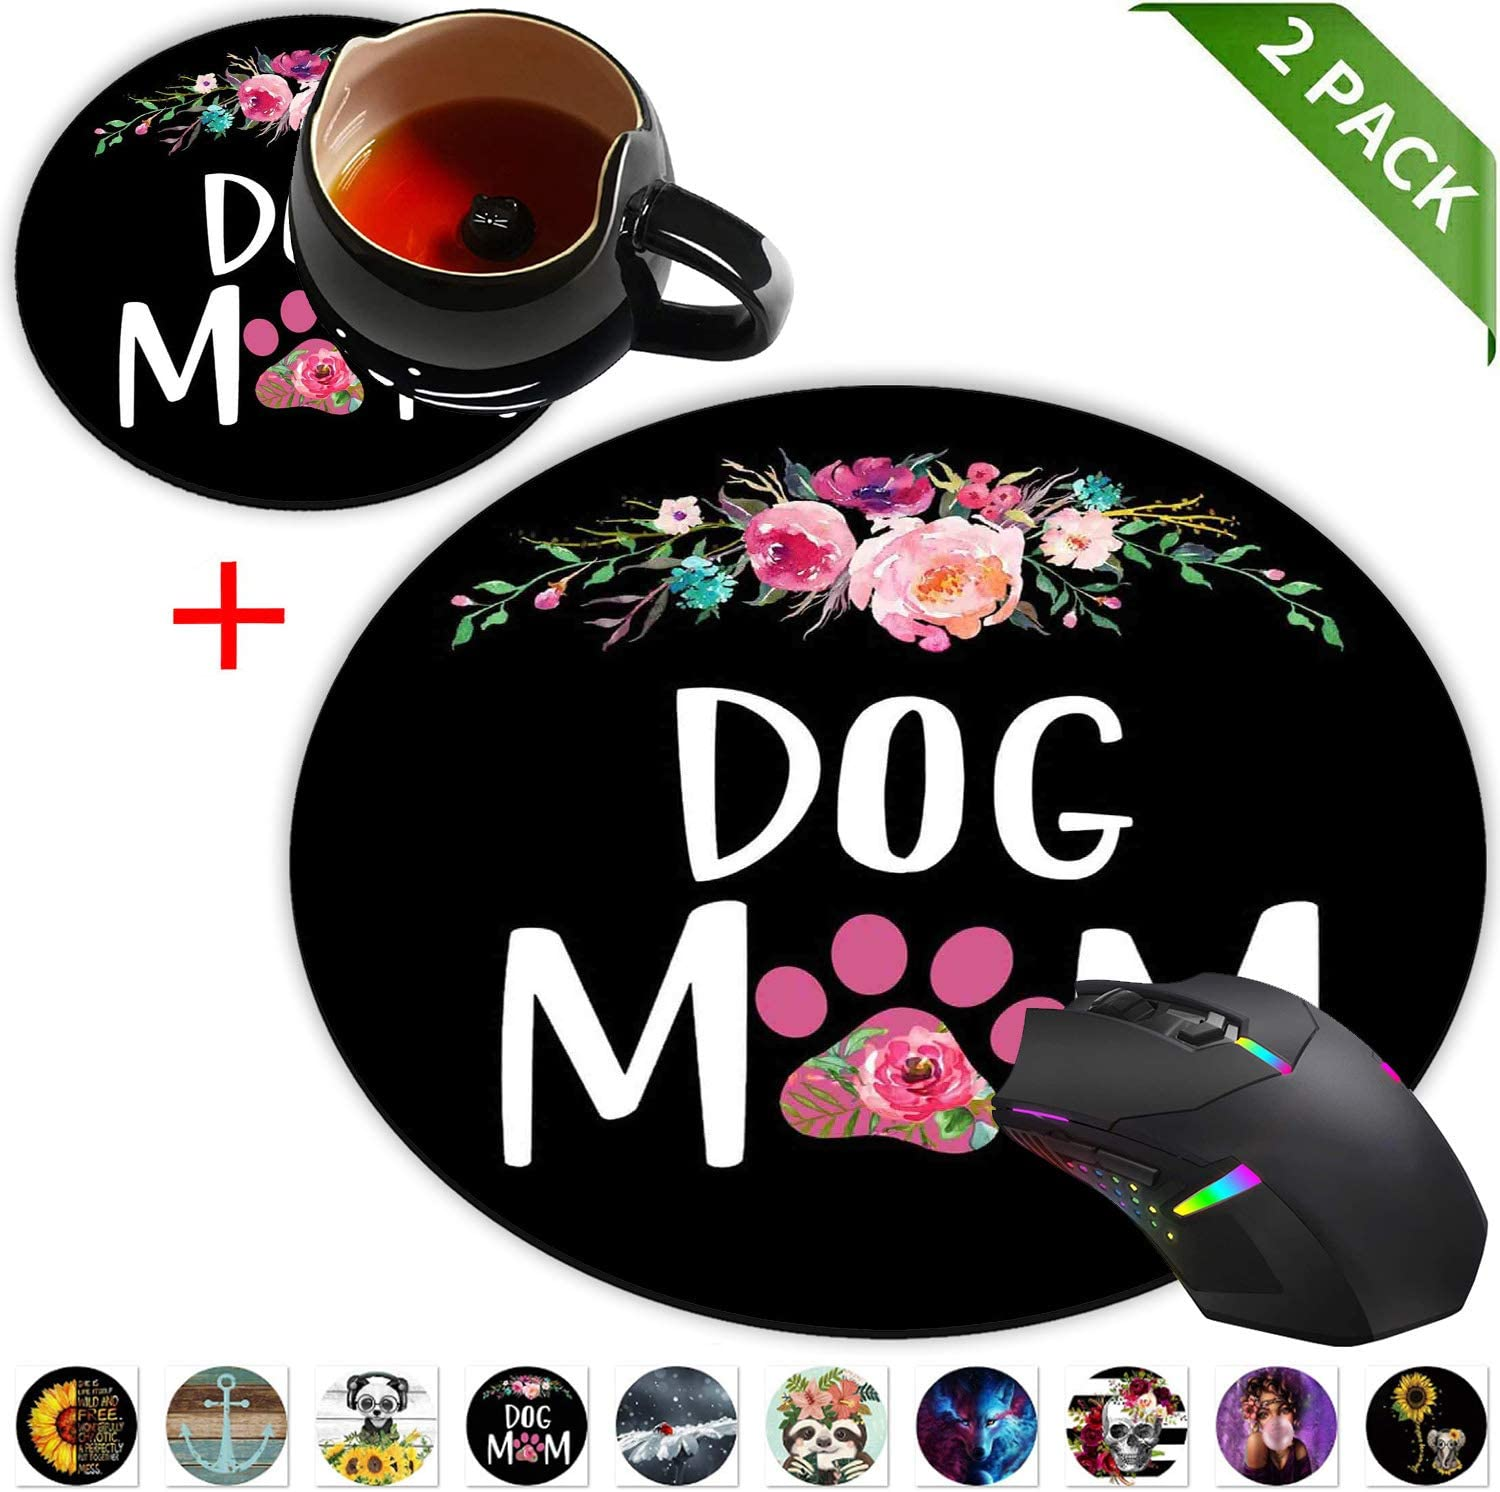 Round Mouse Pad and Coasters Set, Dog Mom Floral Design Mousepad, Anti Slip Rubber Round Mousepads Desktop Notebook Mouse Mat for Working and Gaming